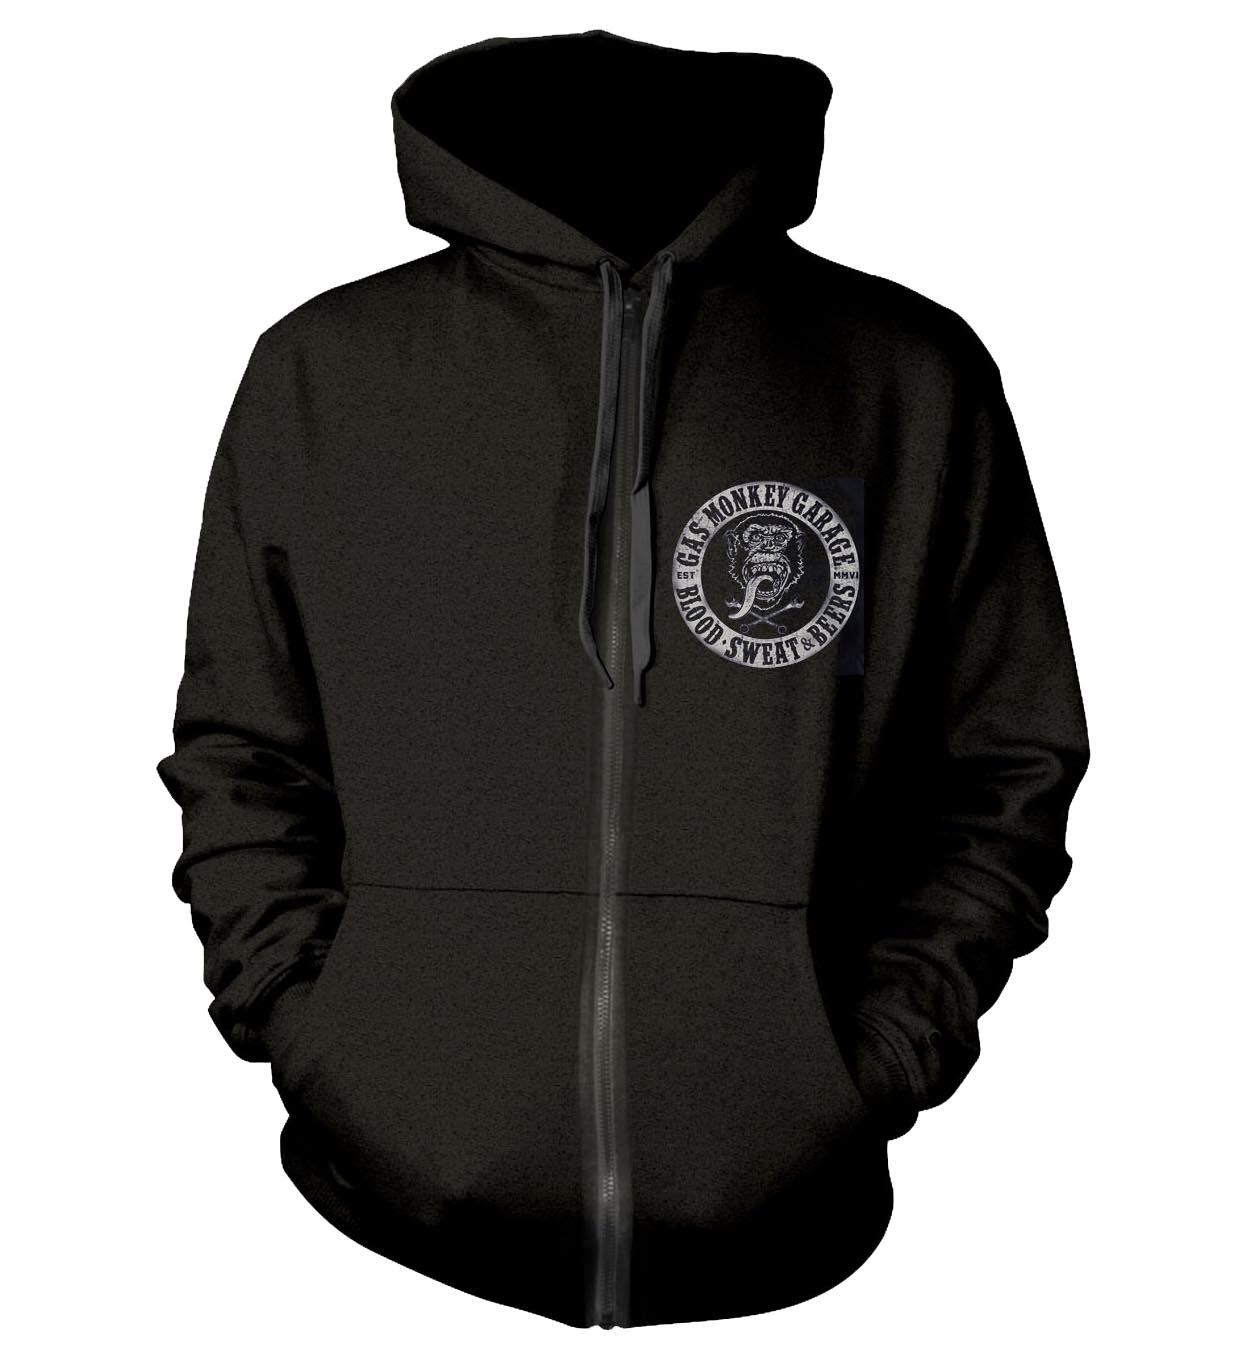 Official-PH-GAS-MONKEY-GARAGE-Hoody-Hoodie-Distressed-LOGO-Zip-All-Sizes thumbnail 3